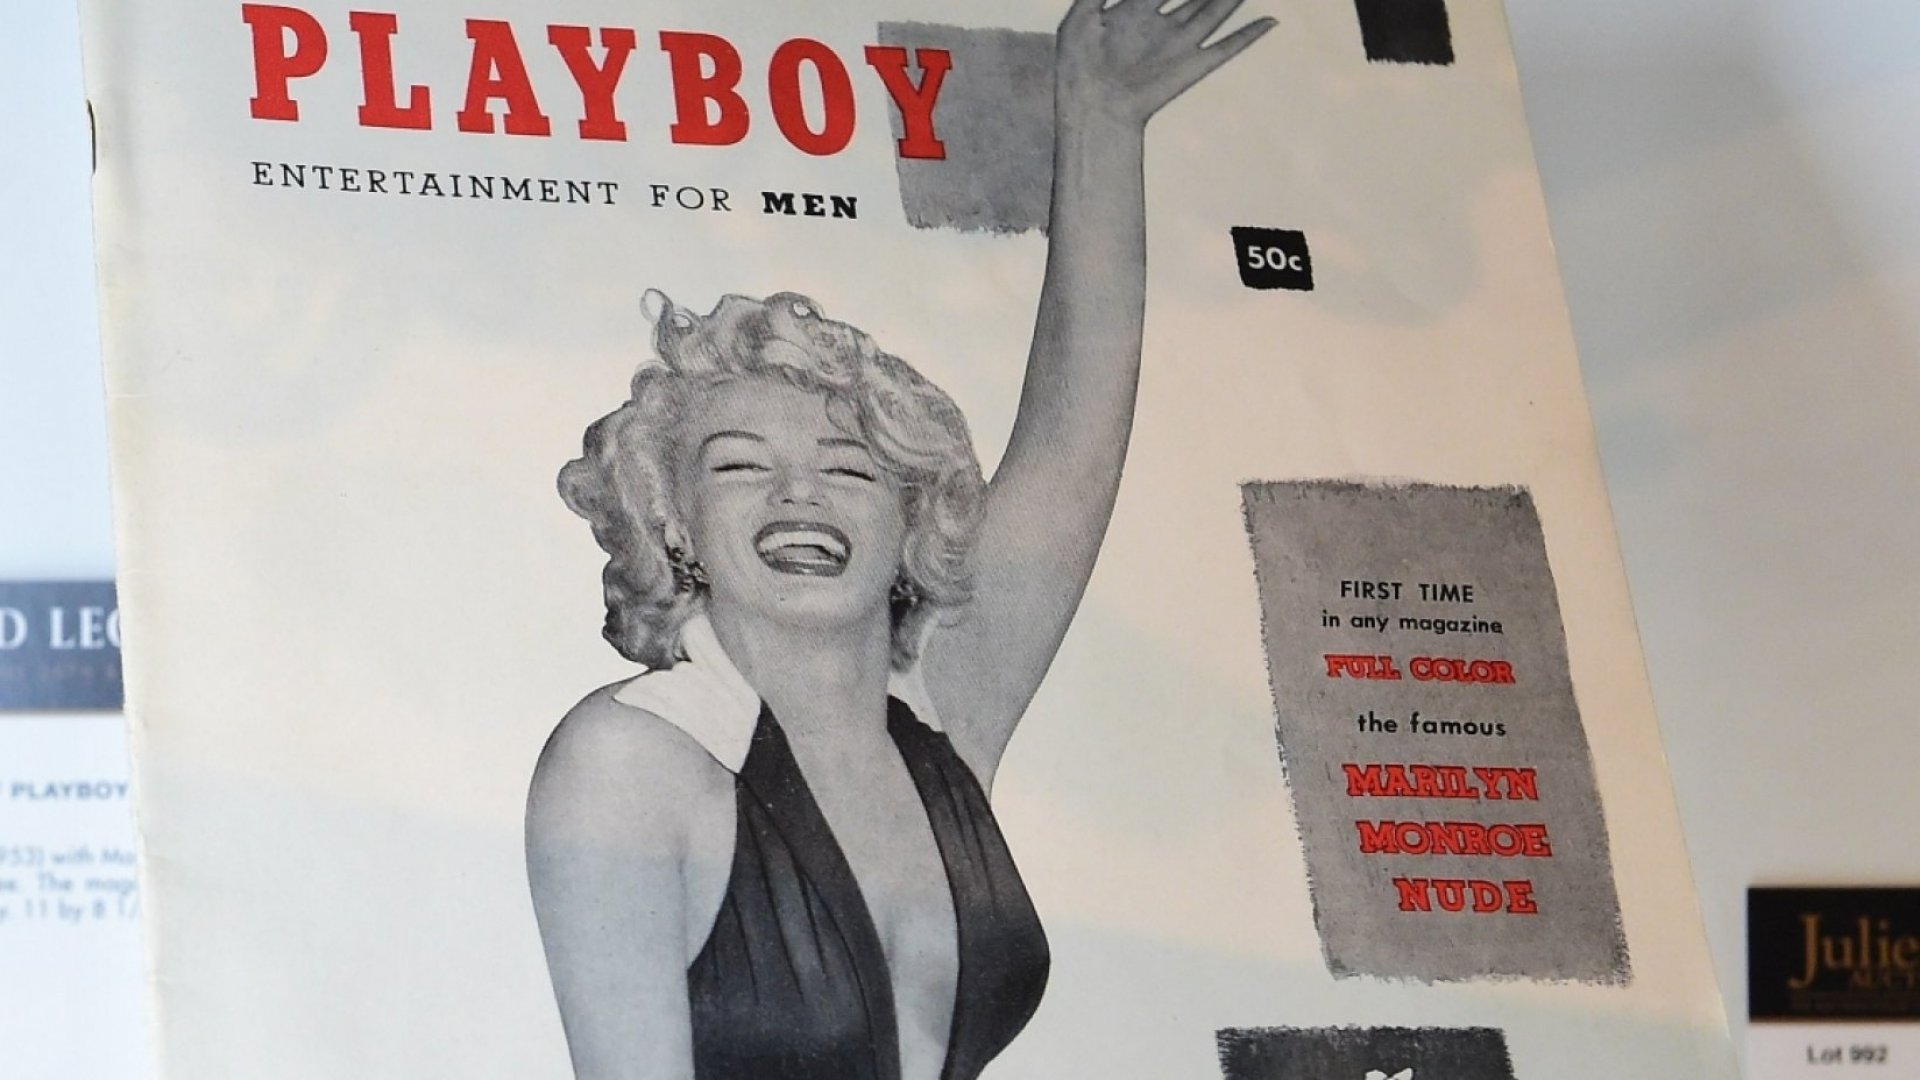 More Reasons Why Playboy Made the Right Call